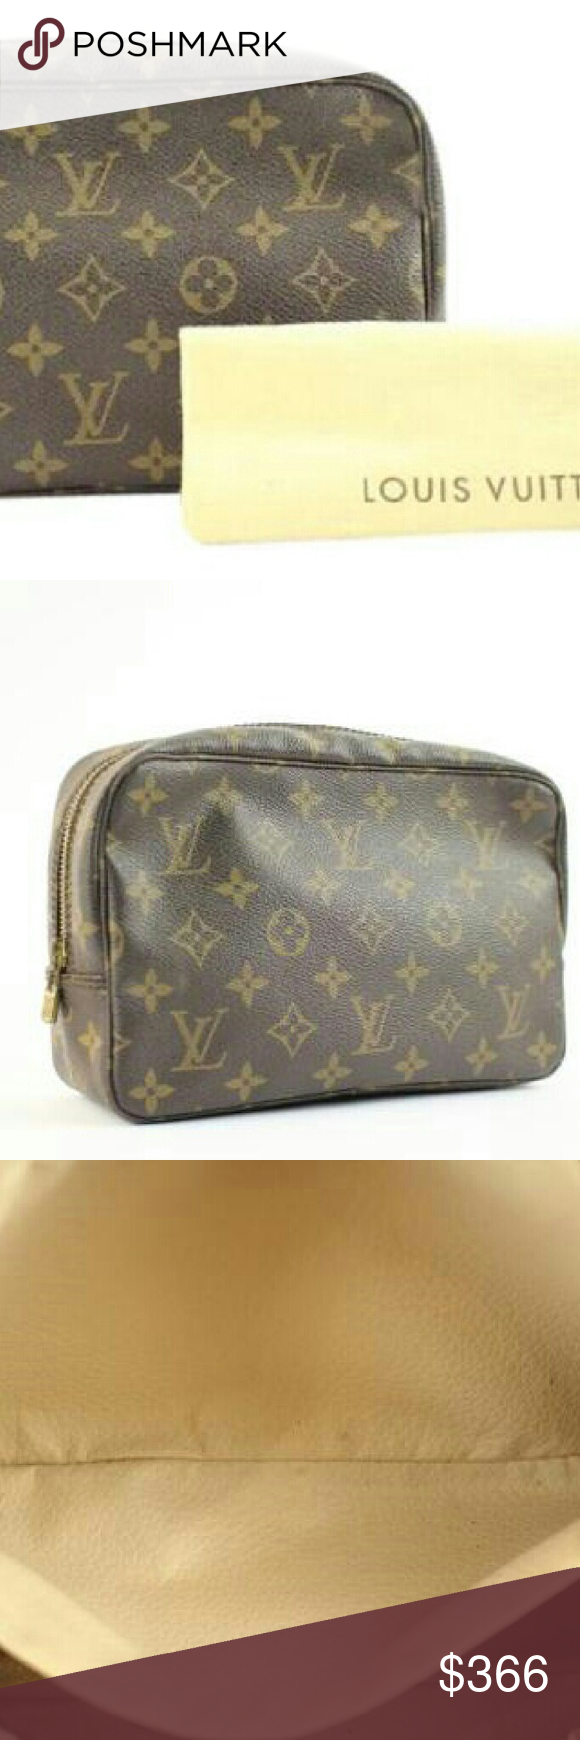 """""""Louis Vuitton Cosmetic Clutch 152LVA1025 """" This item will ship immediately!!  Previously owned.  Made In: France  Measurements: Length:10"""" Width:2.4"""" Height:6""""  Zipper works well.  Signs of Wear: Scuffs on the exterior. Discoloration and slight tarnishing of the hardware. Marks on the interior.Dust bag included. SKU : 152LVA1025 Louis Vuitton Bags Crossbody Bags"""